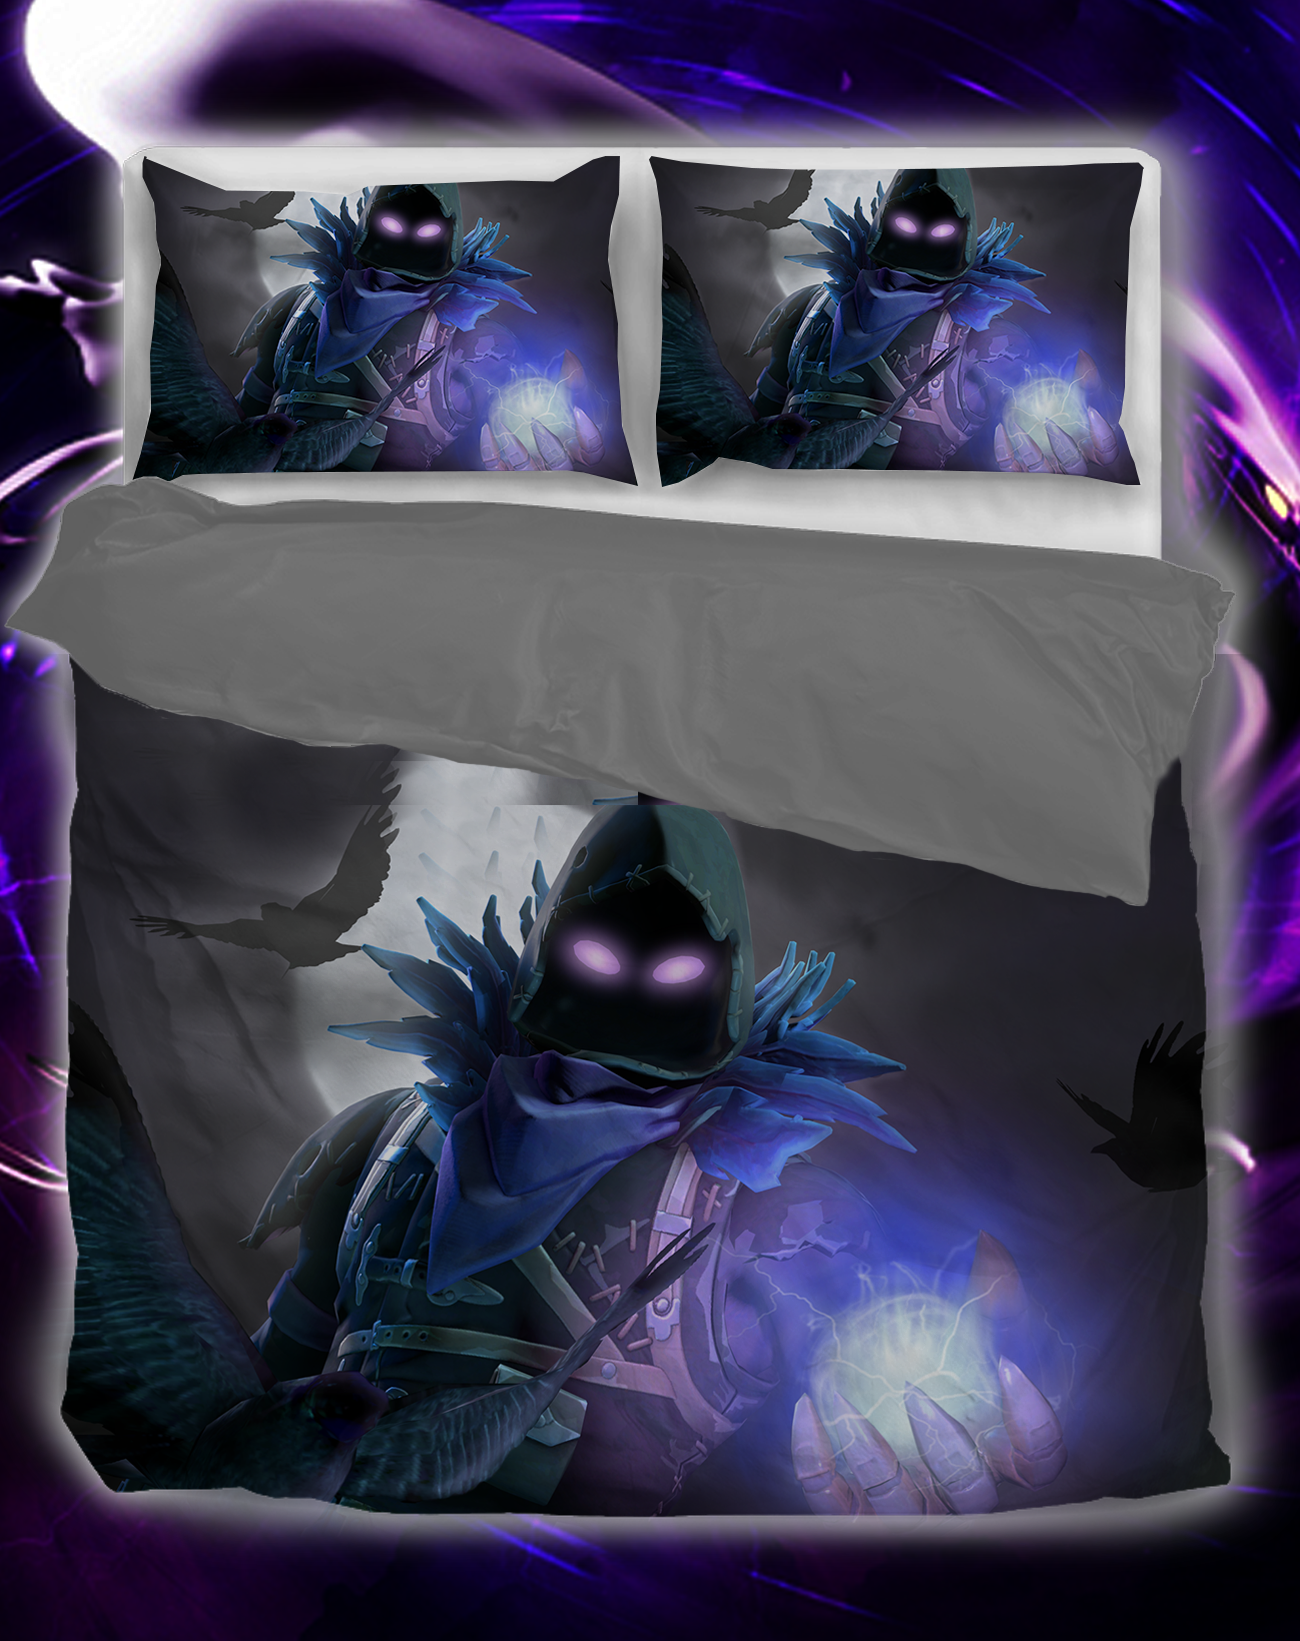 Fortnite Bedset Fortnite Raven Magic 3d Bedset Fortnite Bedding